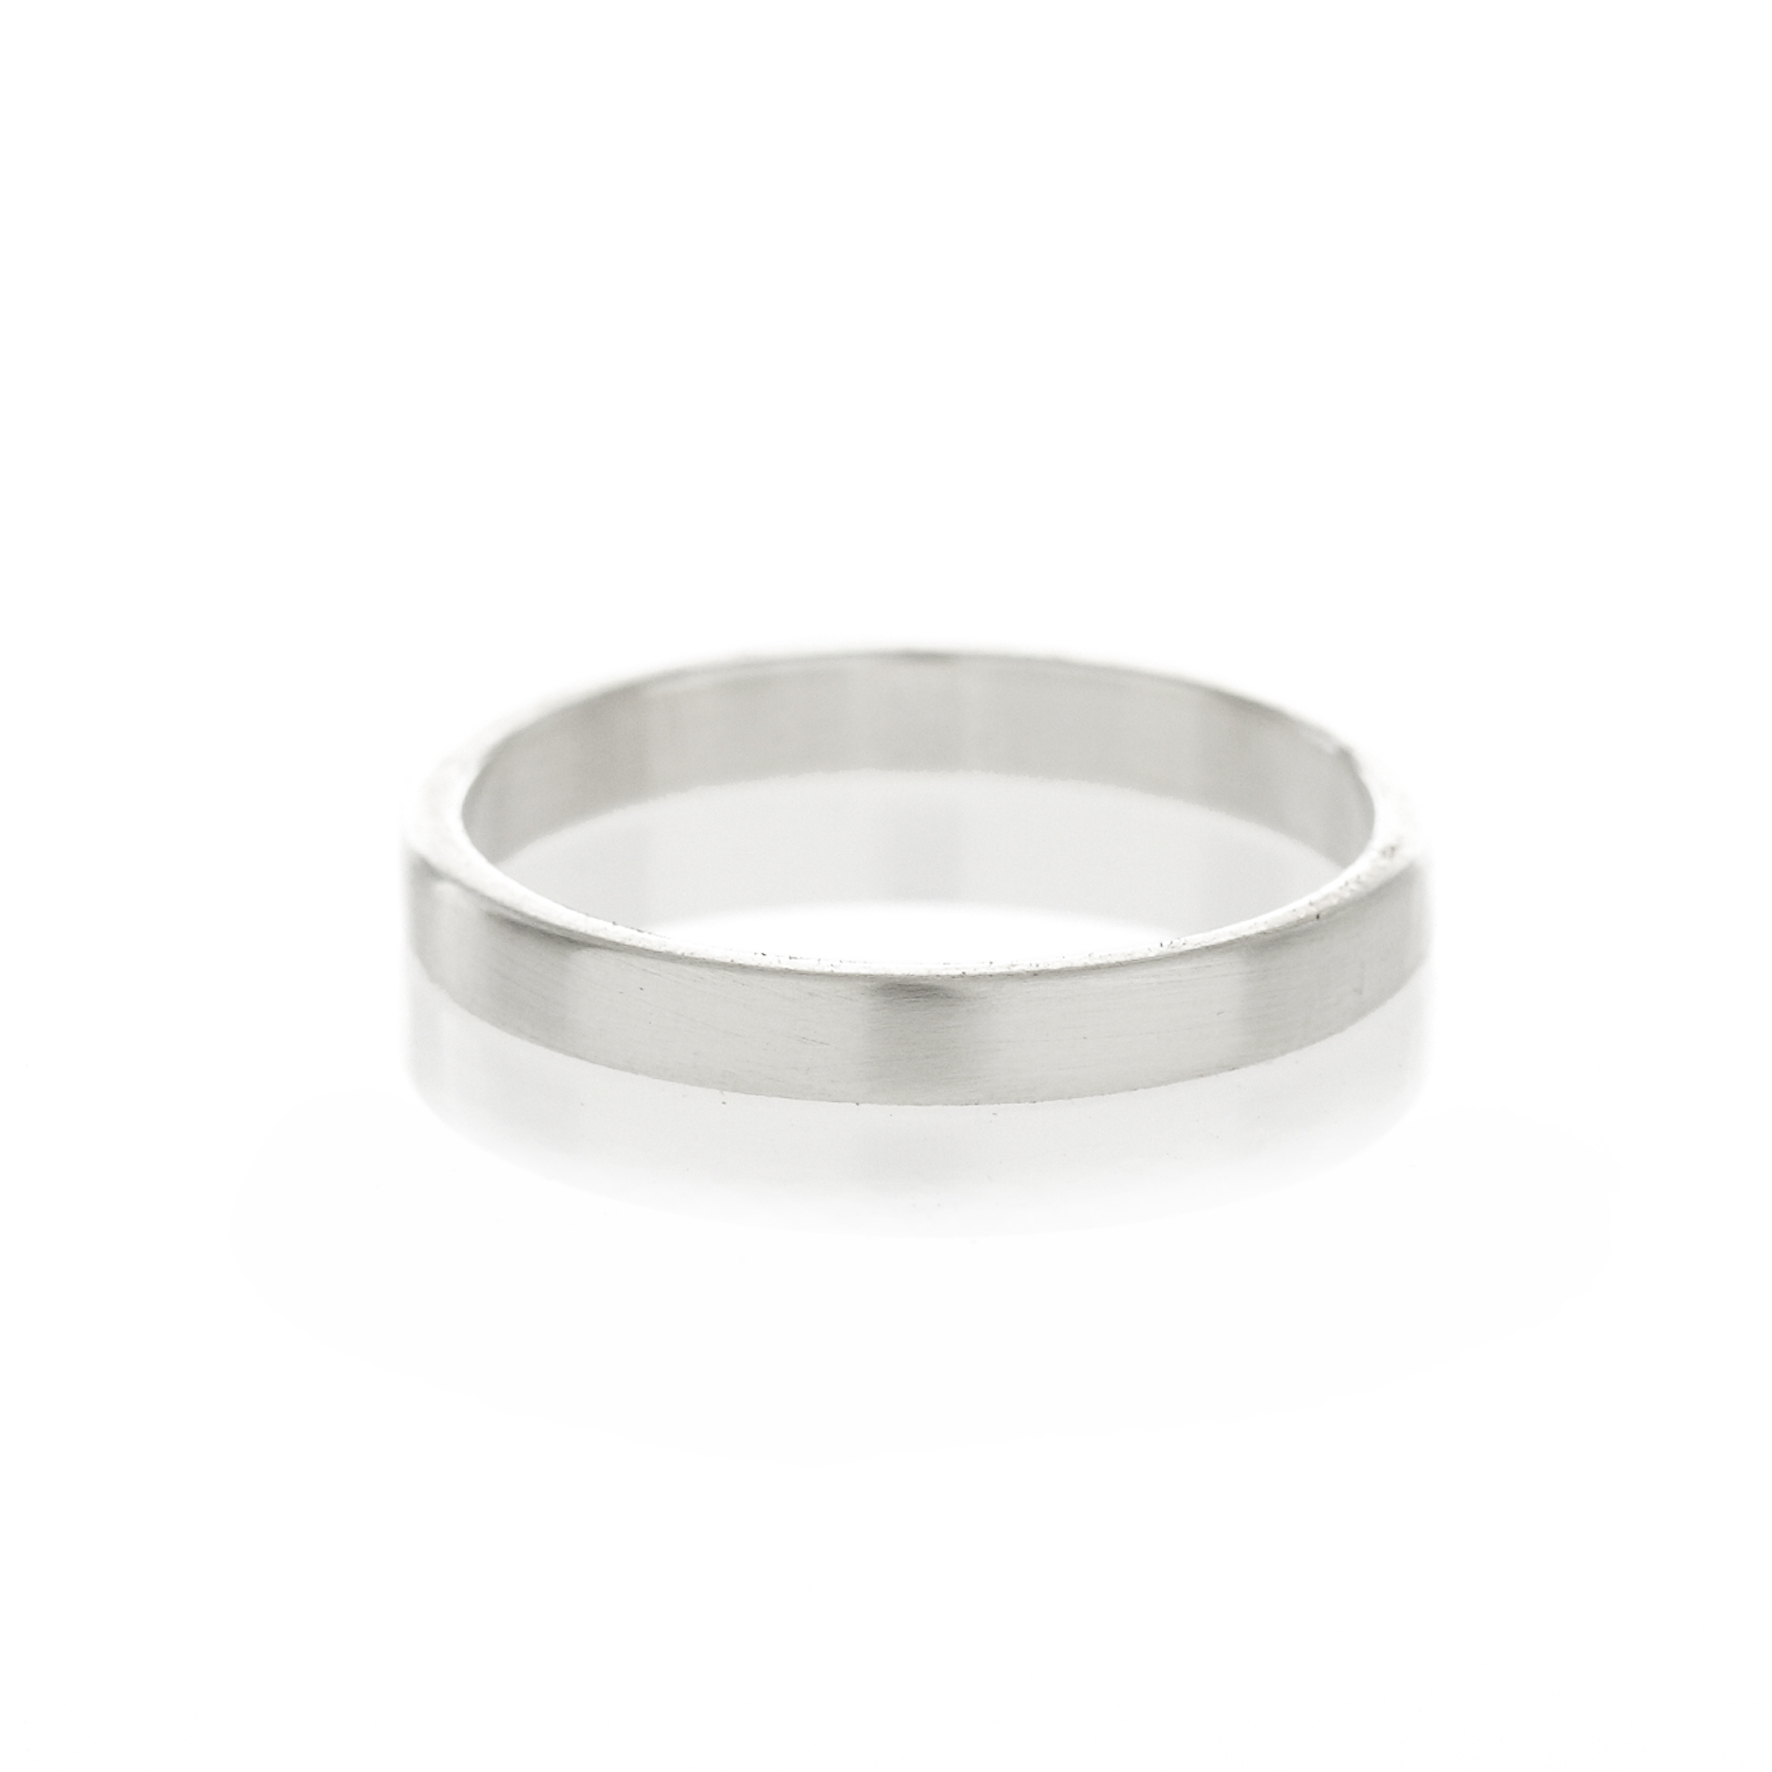 A square profile, sterling silver men's band, with a brushed or polished finish.  Available in width 2mm, 3mm, 3.5mm, 4mm and 5mm.  (Image depicted is a 3mm brushed band.)  When ordering one of the rings from our men's collection please let us know if you would like a brushed or polished finish, andif you can provide us with the specific ring size please do so.   Both of the above can be donein the comment box when placing your order.